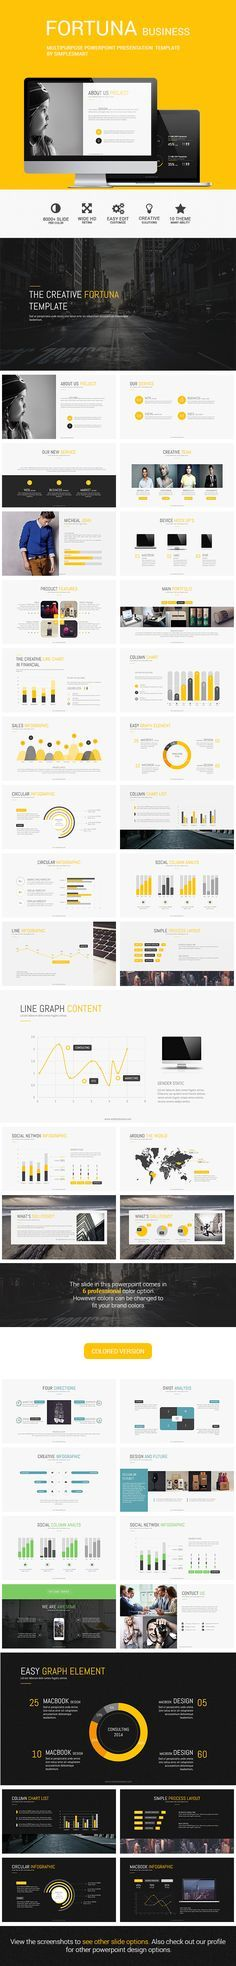 FORTUNA - Multipurpose Presentation Template - Business Powerpoint Templates